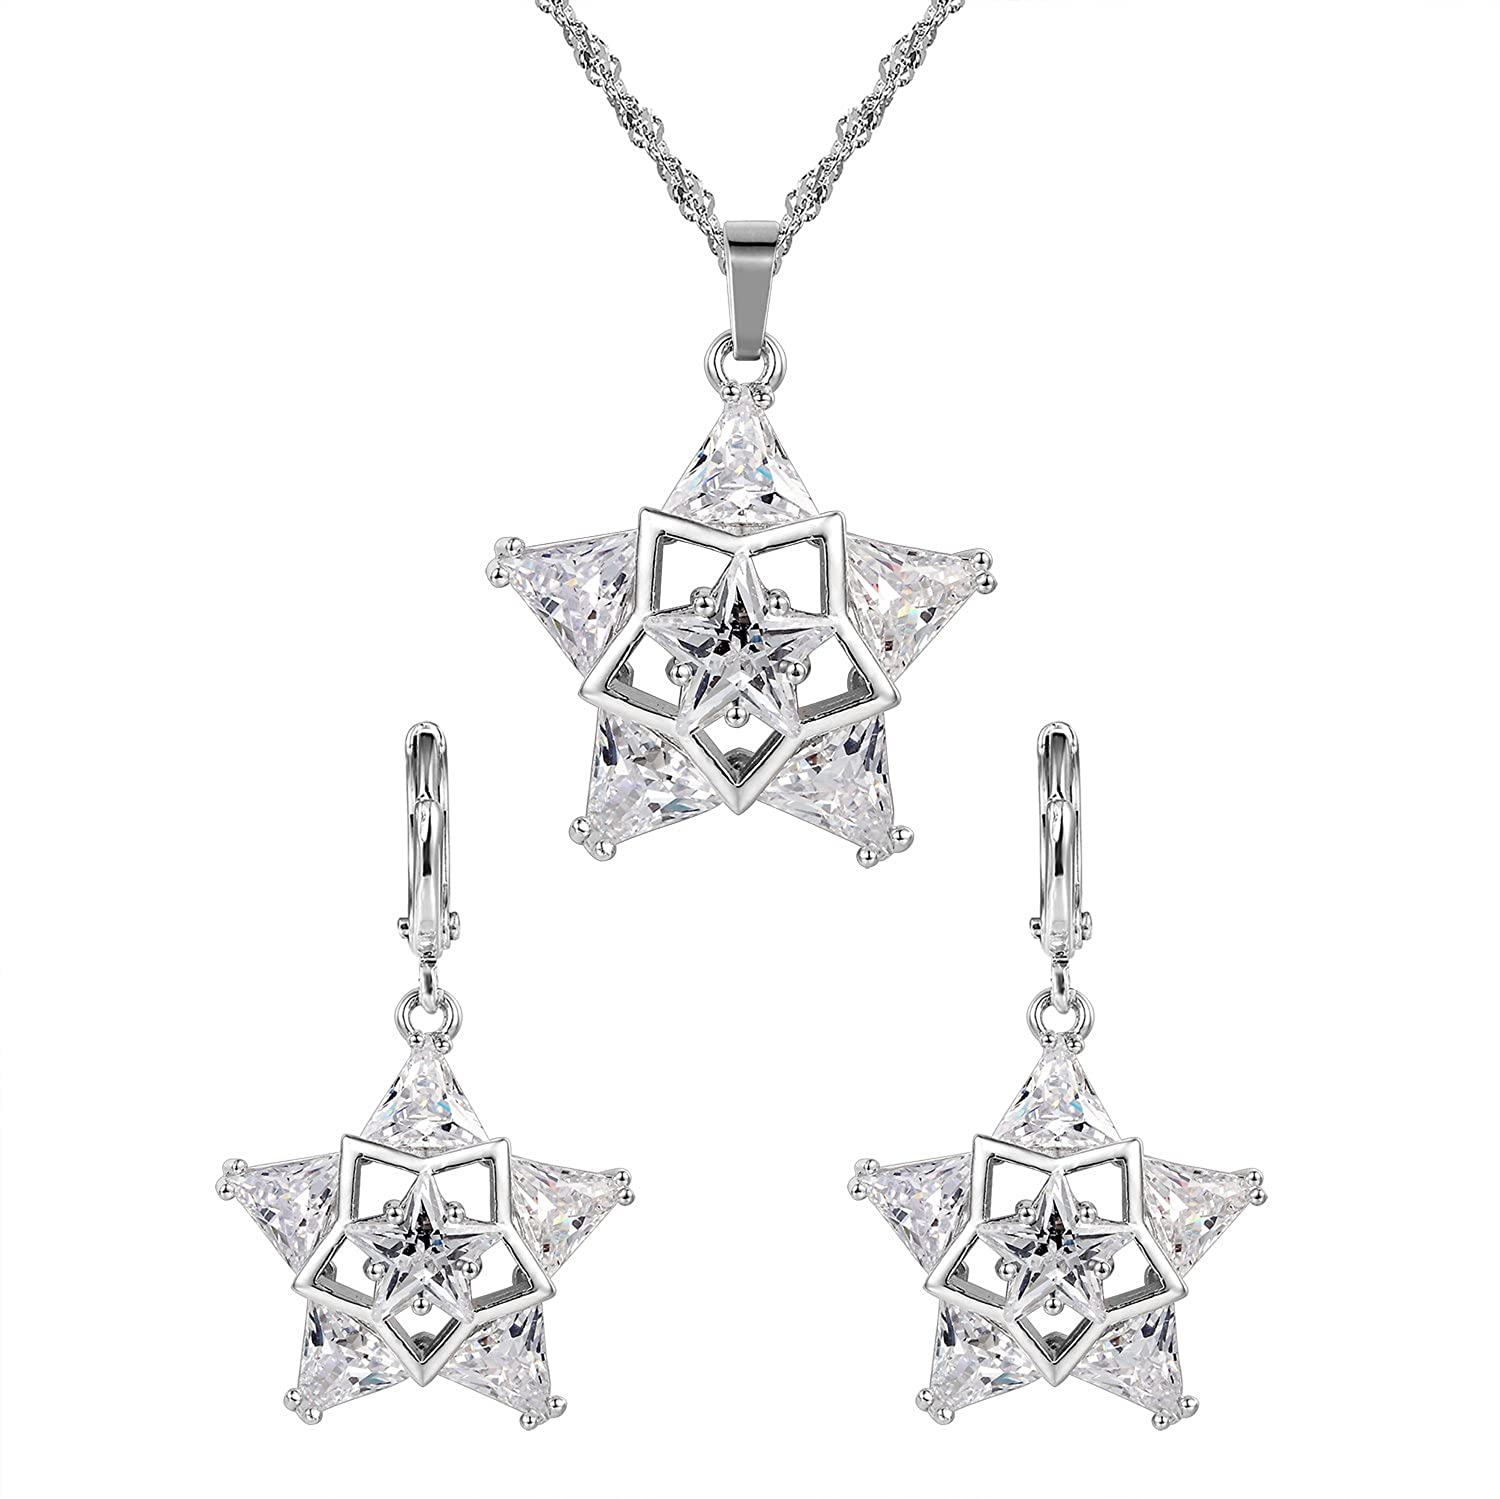 Silver Women Cristal Star Earrings and Pendant Set Fine Jewelry Set for Women